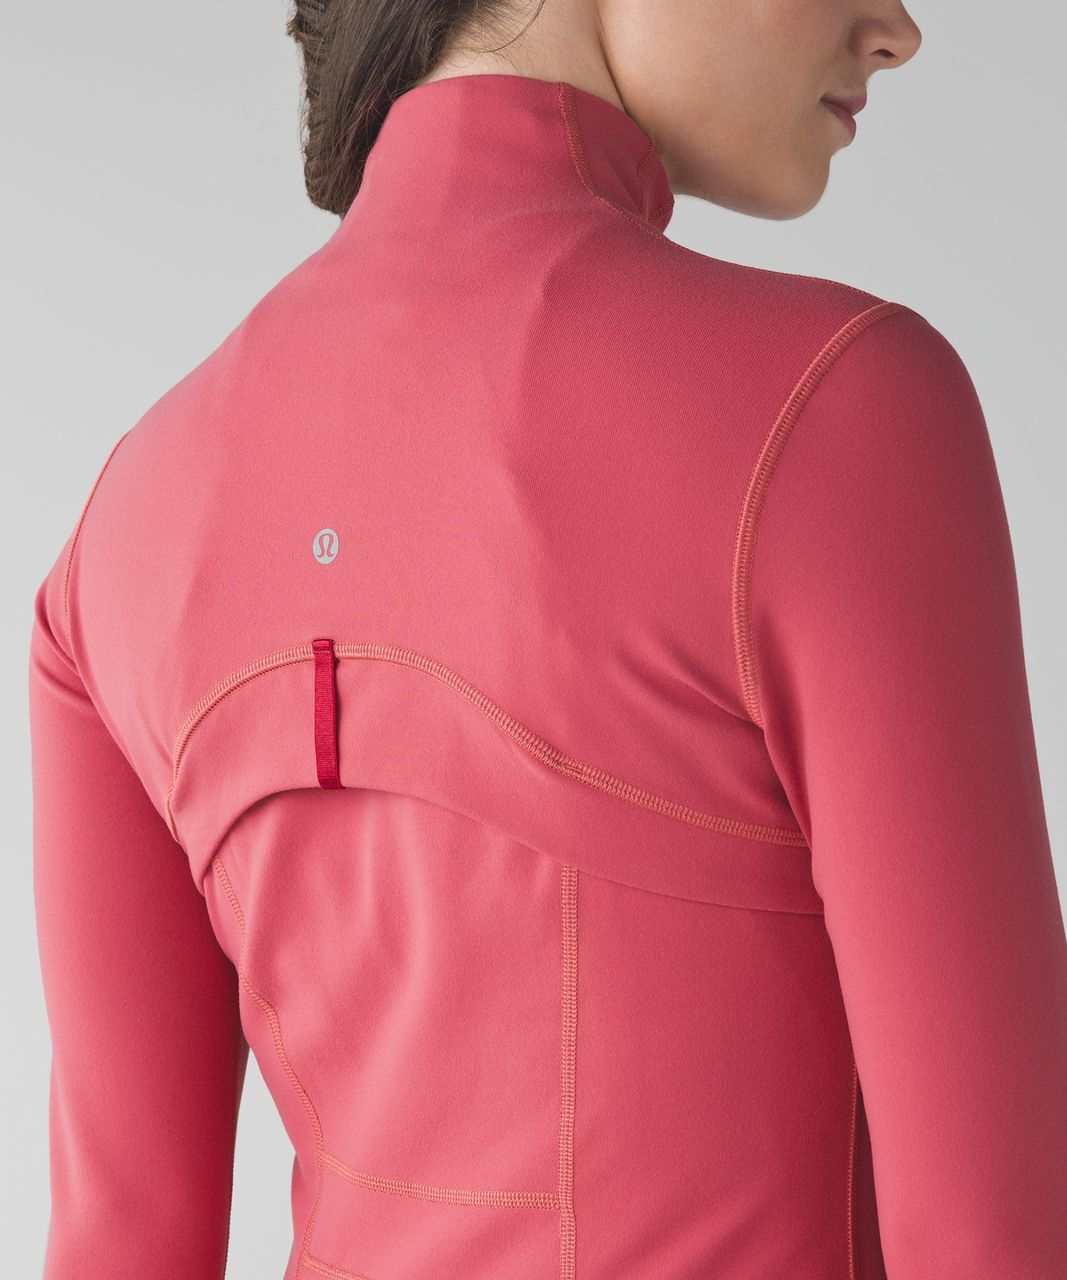 Lululemon Define Jacket - Fireside Red